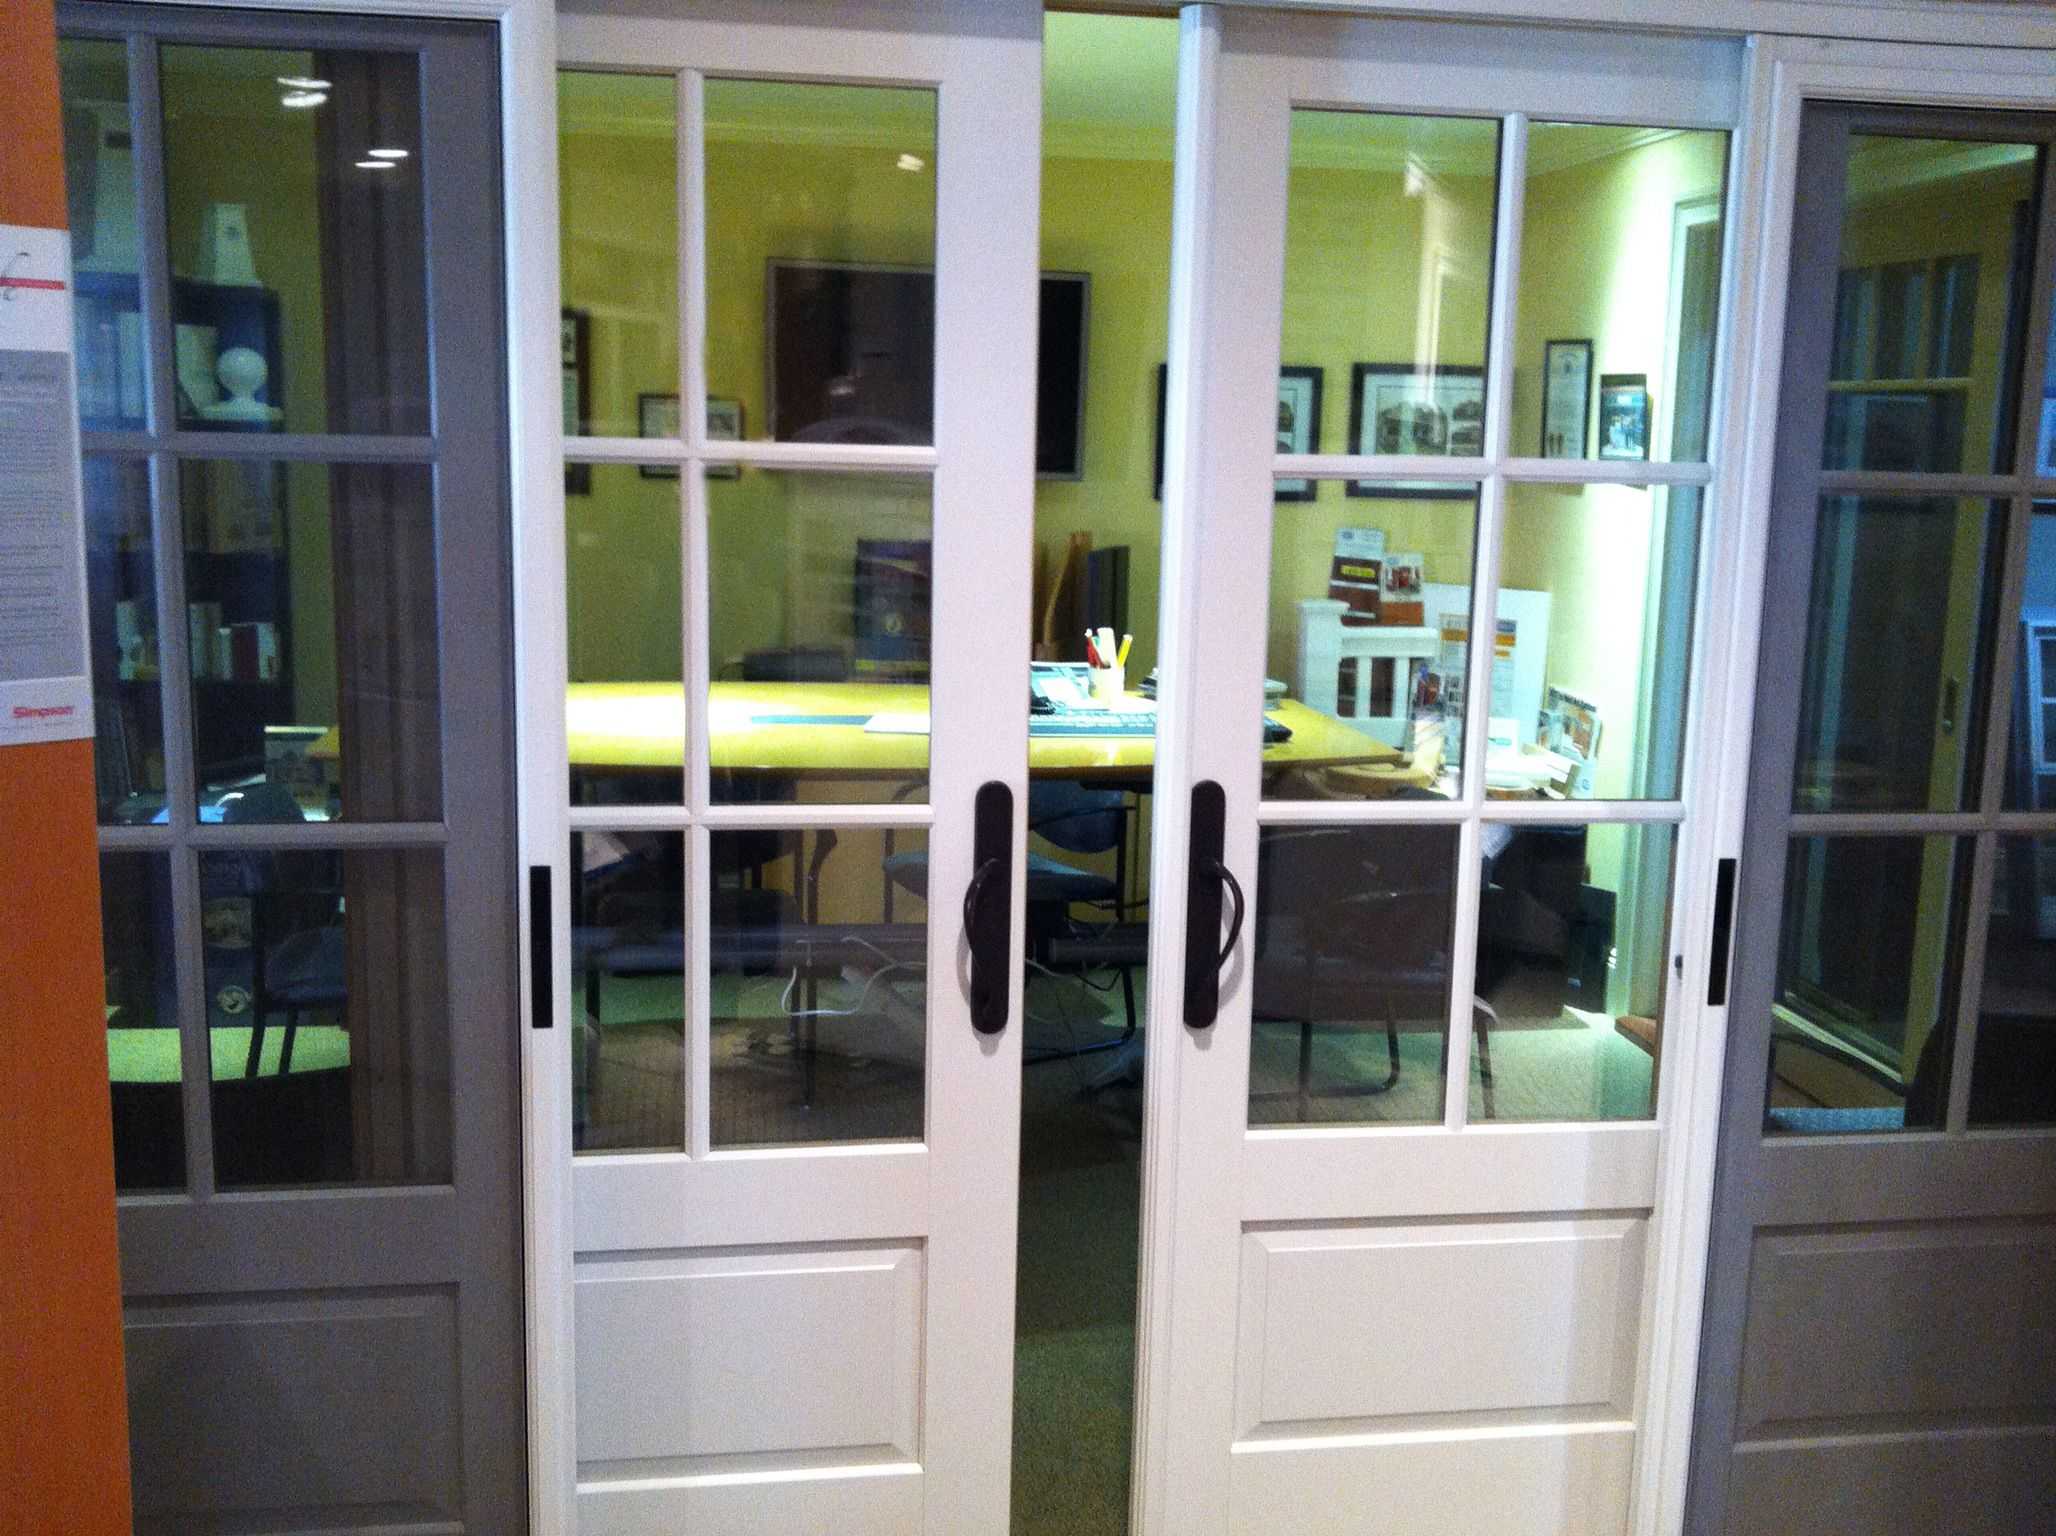 The marvin ultimate bi parting sliding french door in our for Sliding door in french